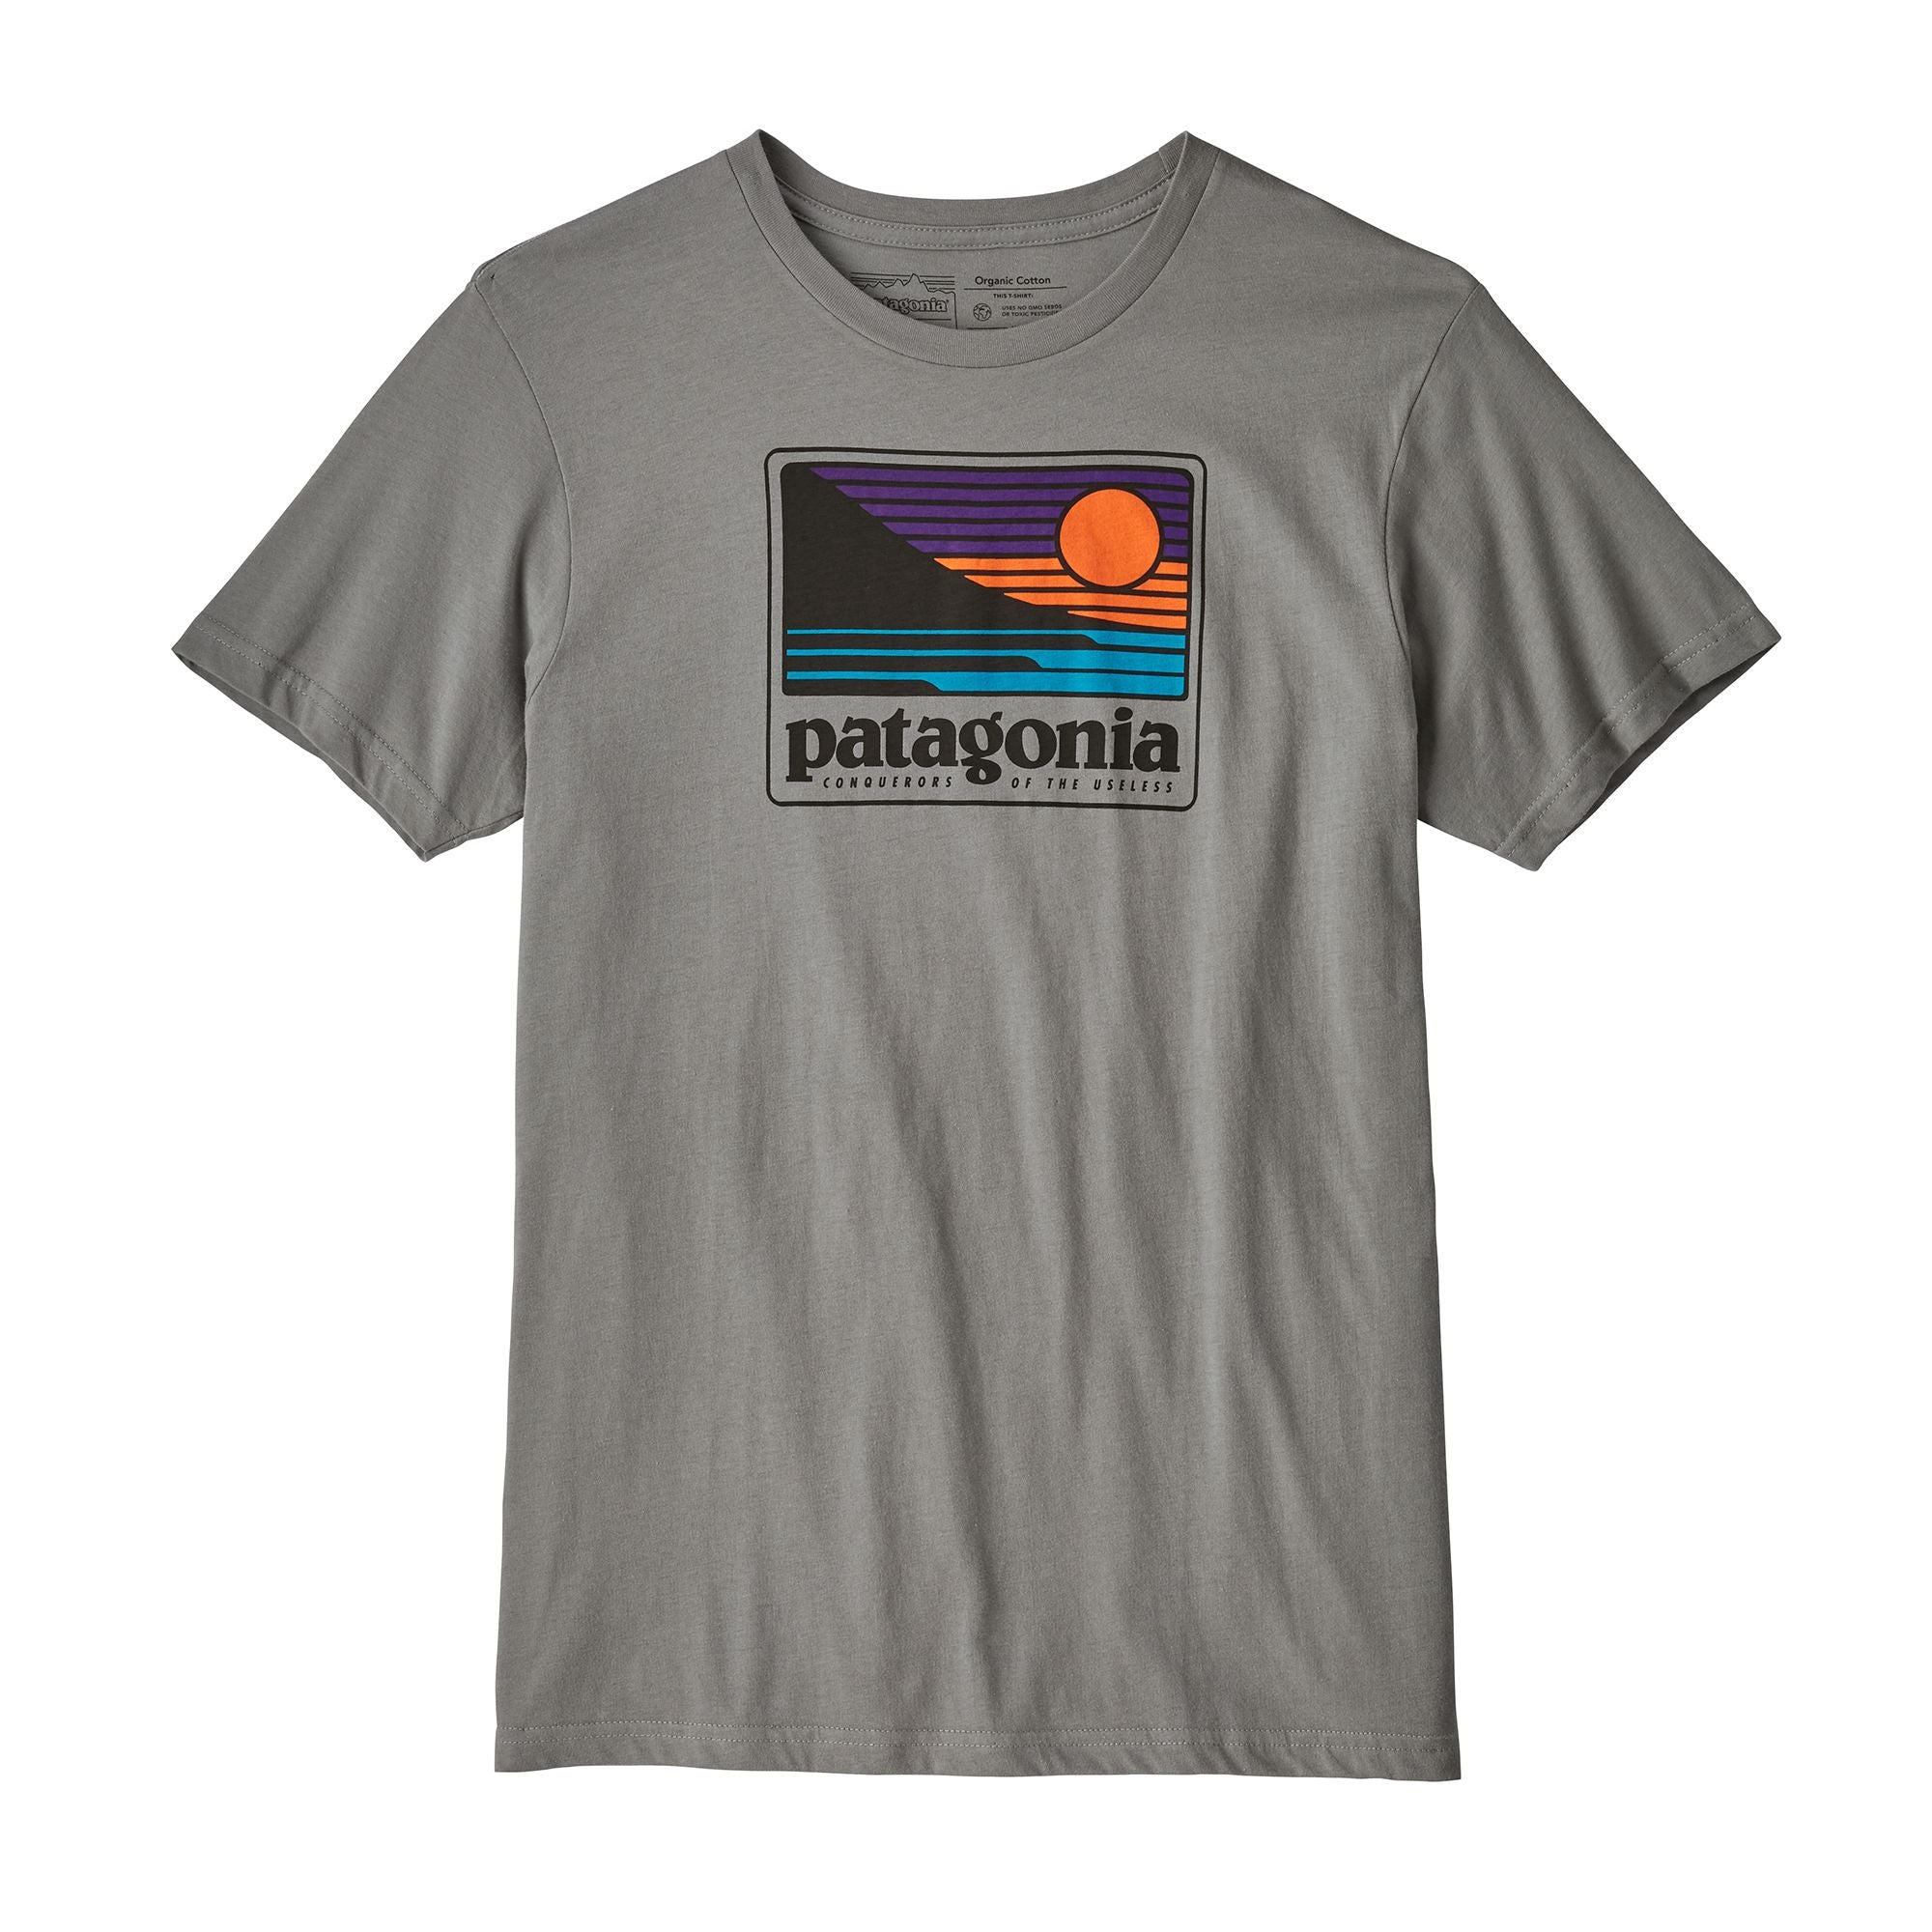 Patagonia Men's Up & Out Organic Cotton T-Shirt